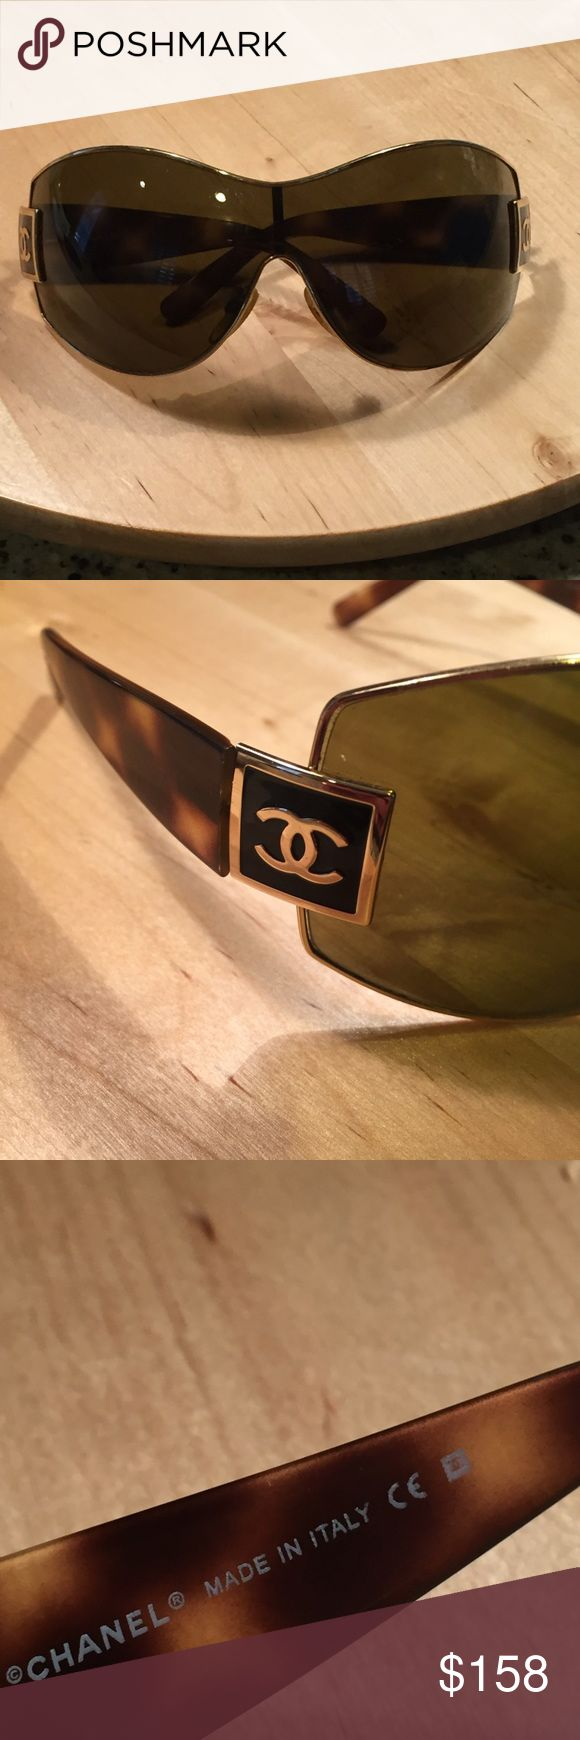 Auth. Chanel sunglasses Auth Chanel sunnies gold/tortoise with logo on both sides minimal scratches no case some wear to the nose pieces see pic No trades open to offers thru offer feature! CHANEL Accessories Sunglasses